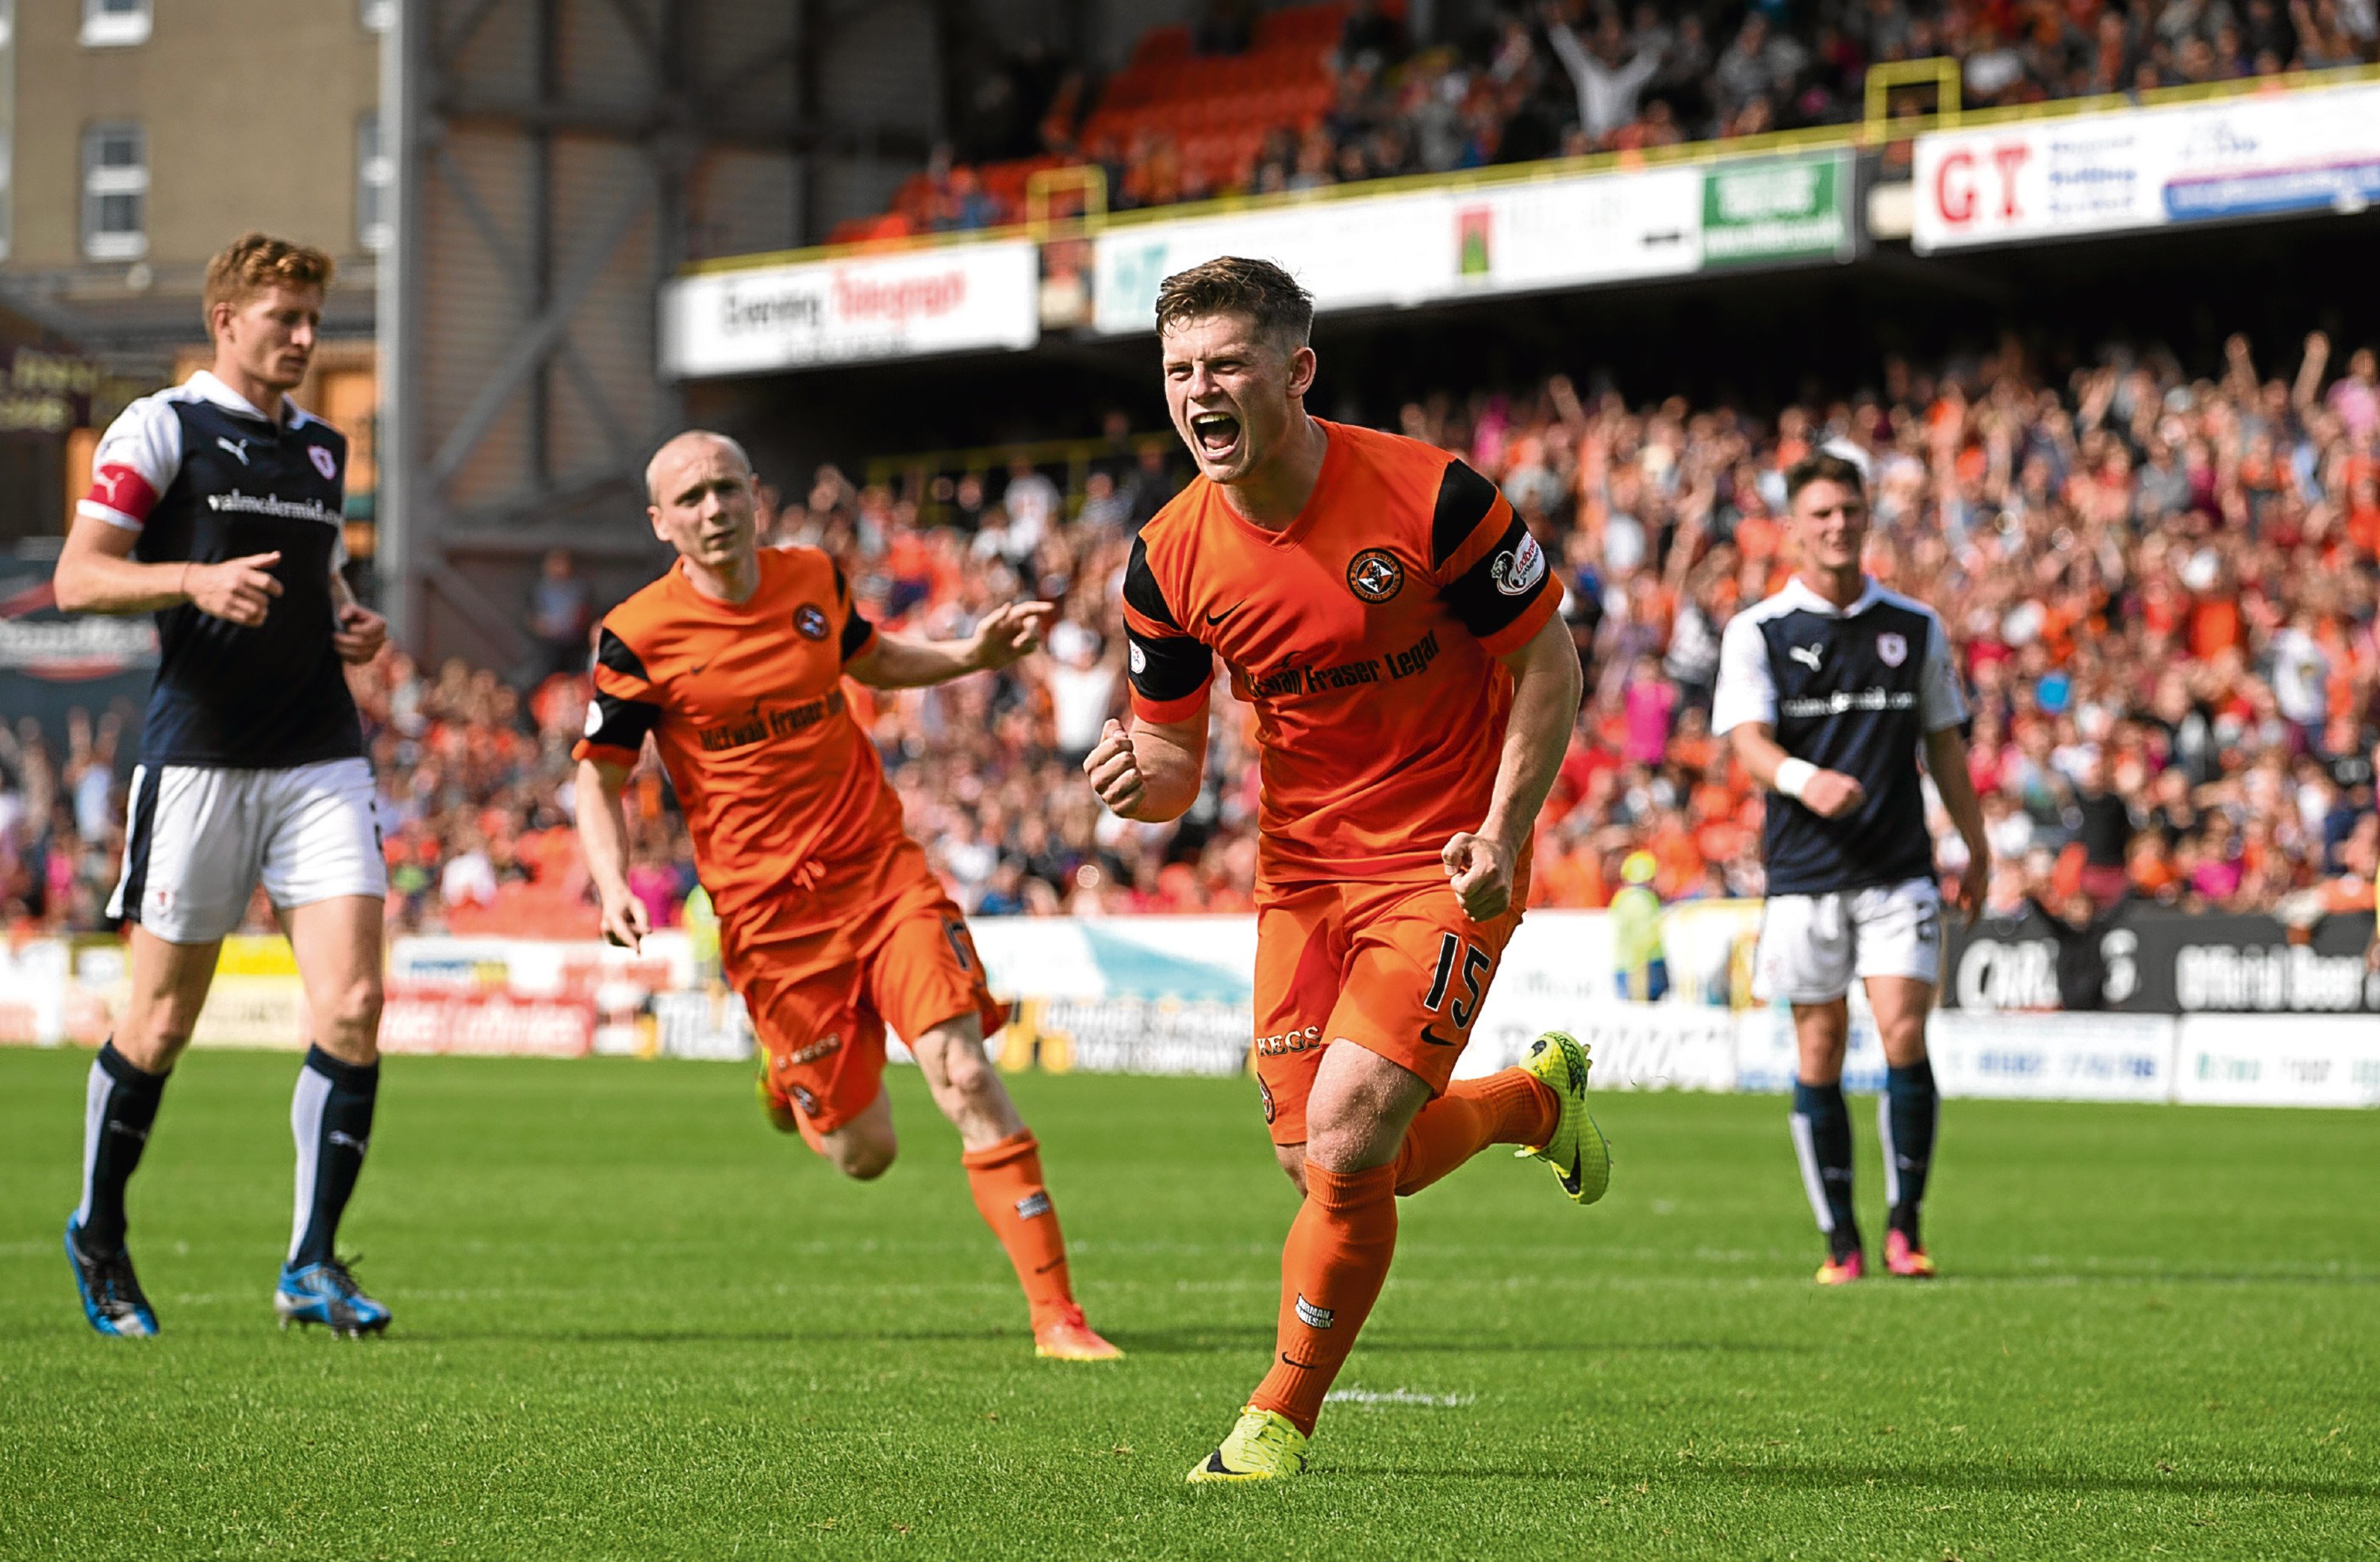 Stewart Murdoch knows his side must be at their best against Raith Rovers and not slip up again like back in August after Cammy Smith put Dundee United (pictured) 2-0 up.